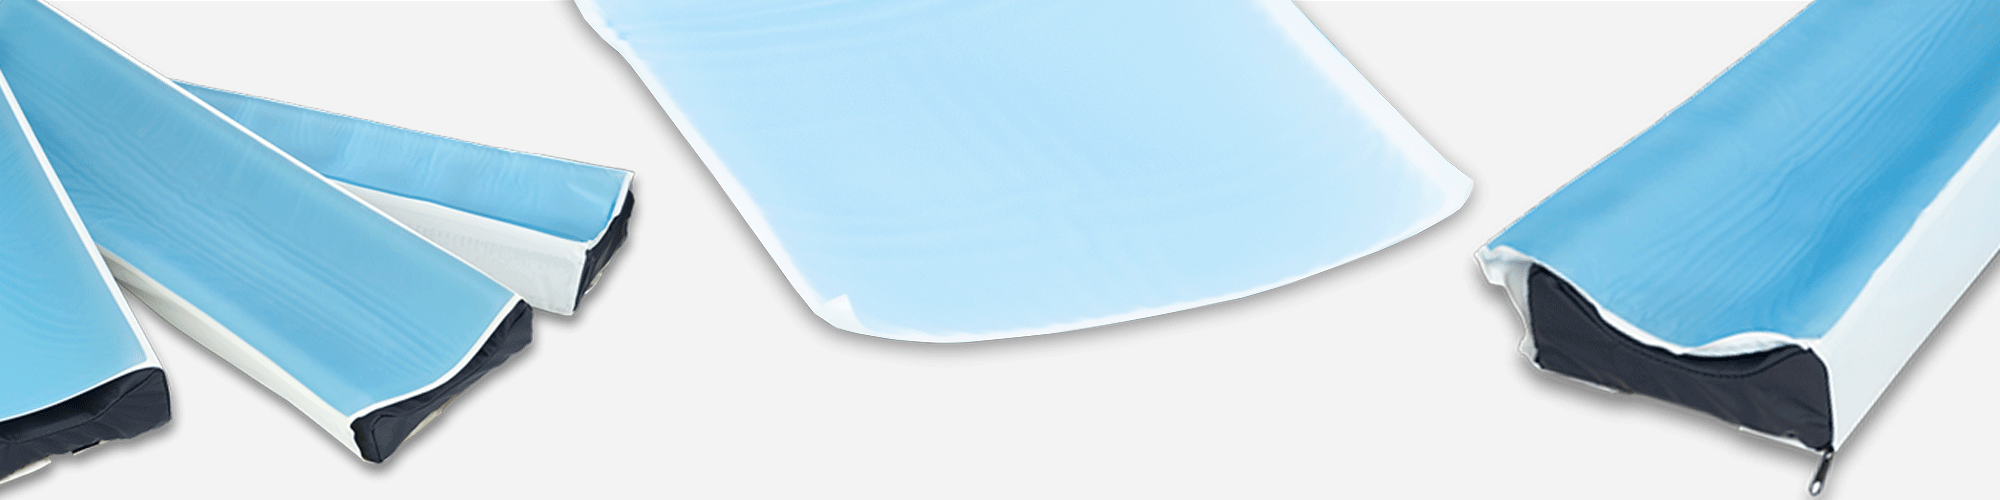 armboard-gel-pads-banner.png